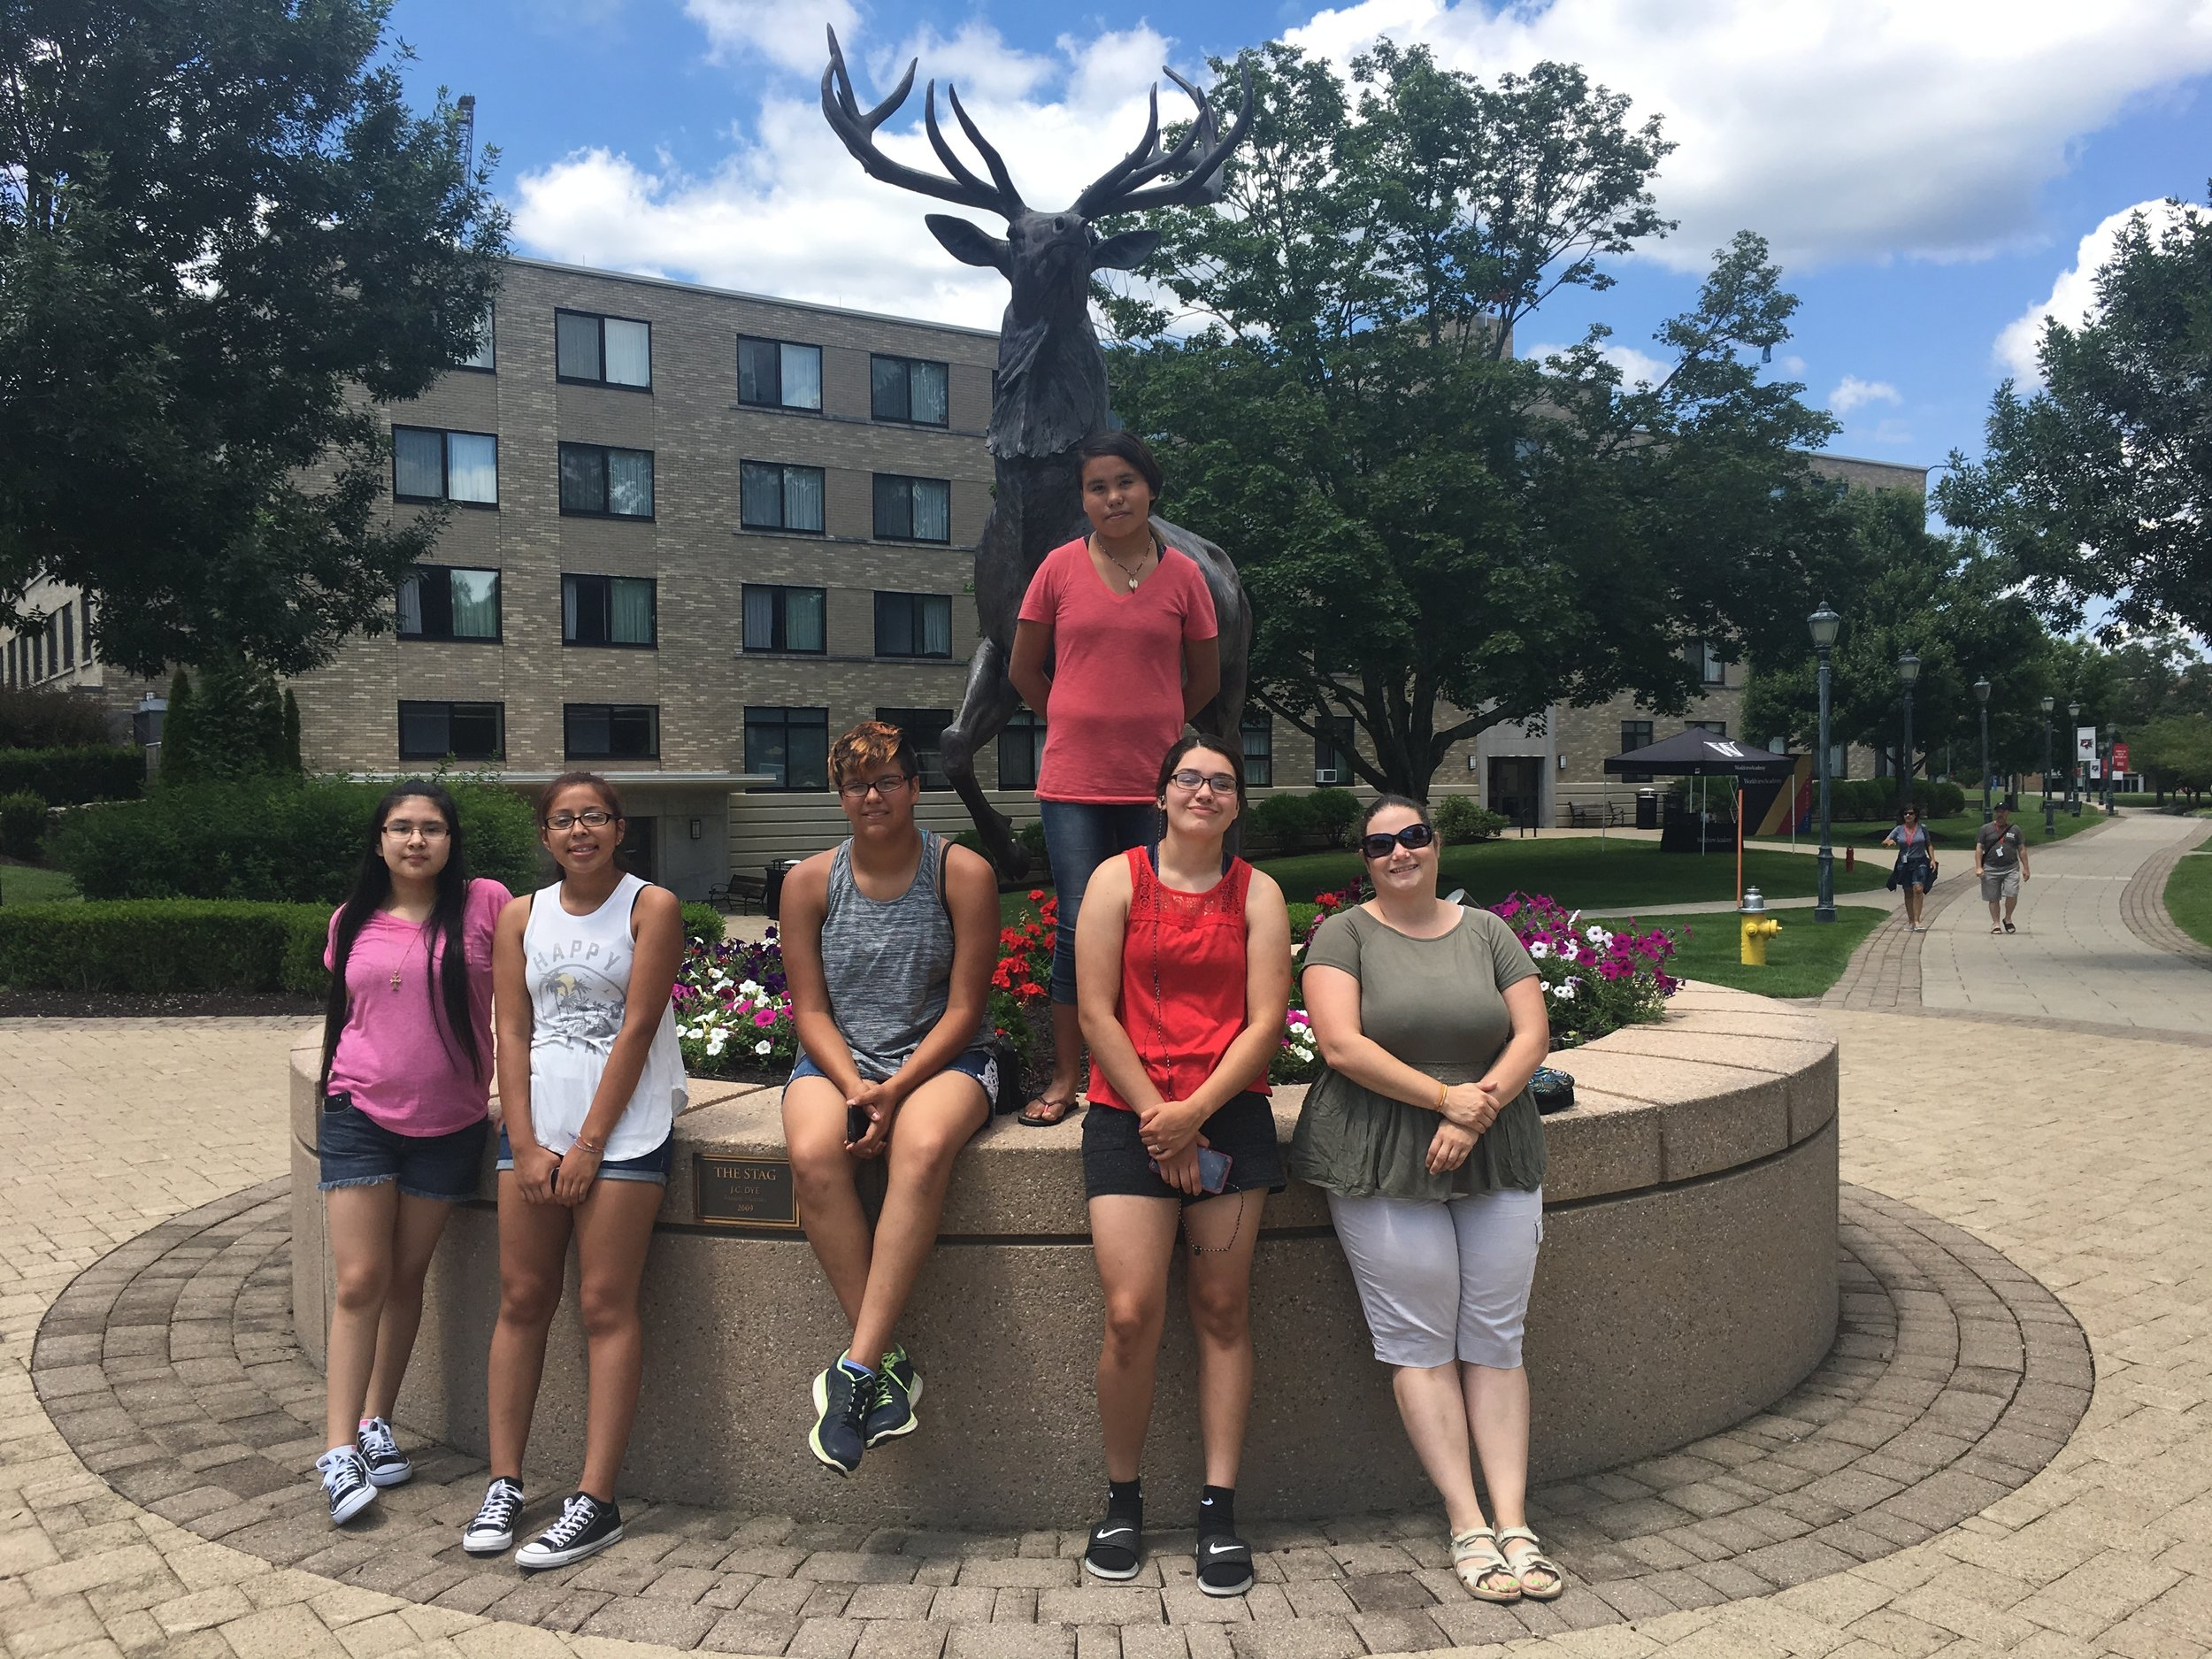 A visit to the Fairfield University campus and a stop by the school's mascot, The Stag.